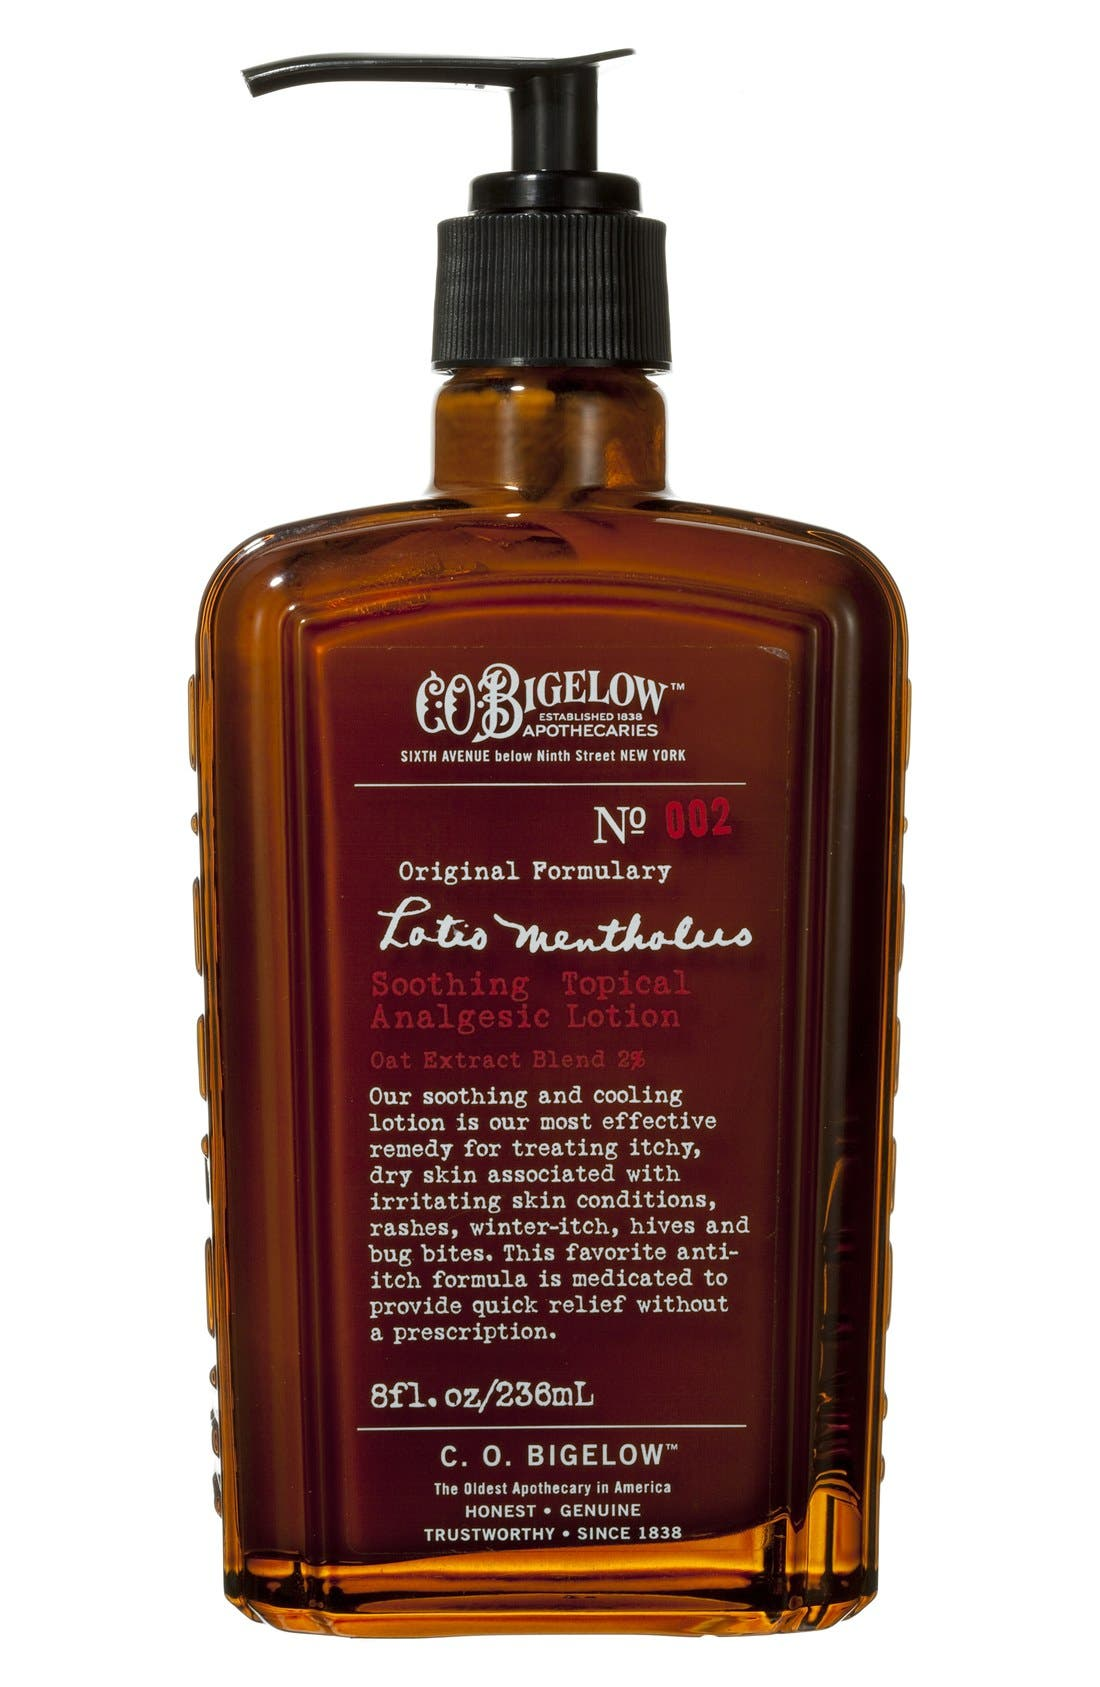 C.O. Bigelow® 'Lotio Mentholus' Soothing Topical Analgesic Lotion